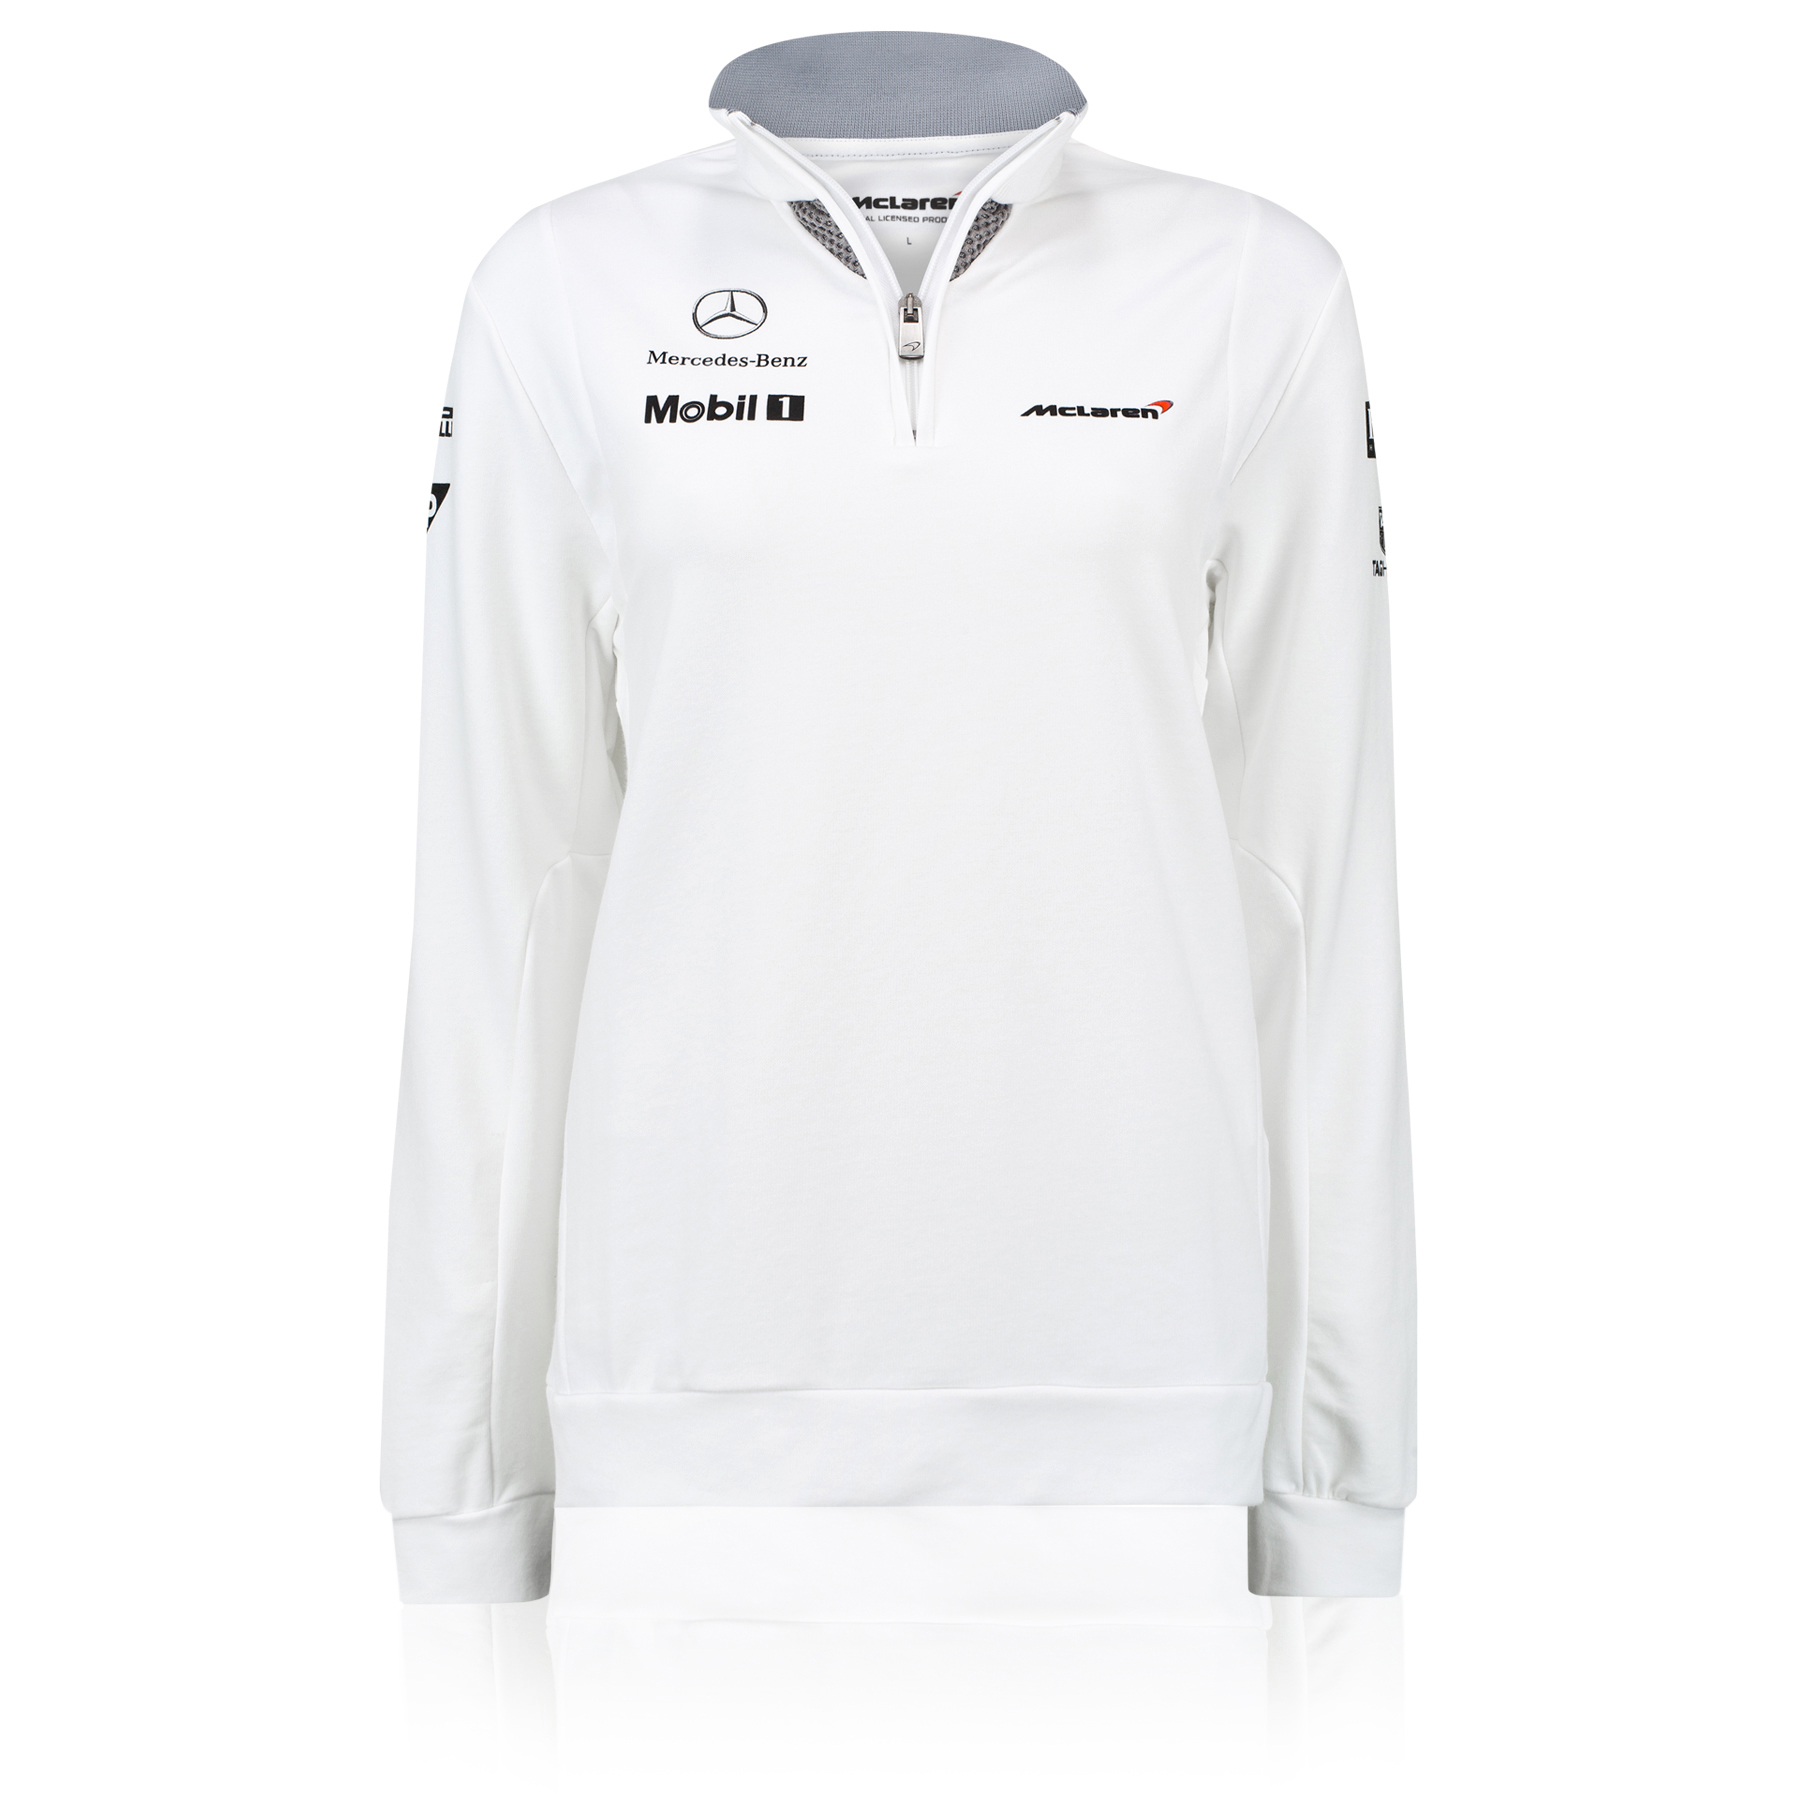 McLaren Mercedes 2014 Long Sleeve Top - Womens